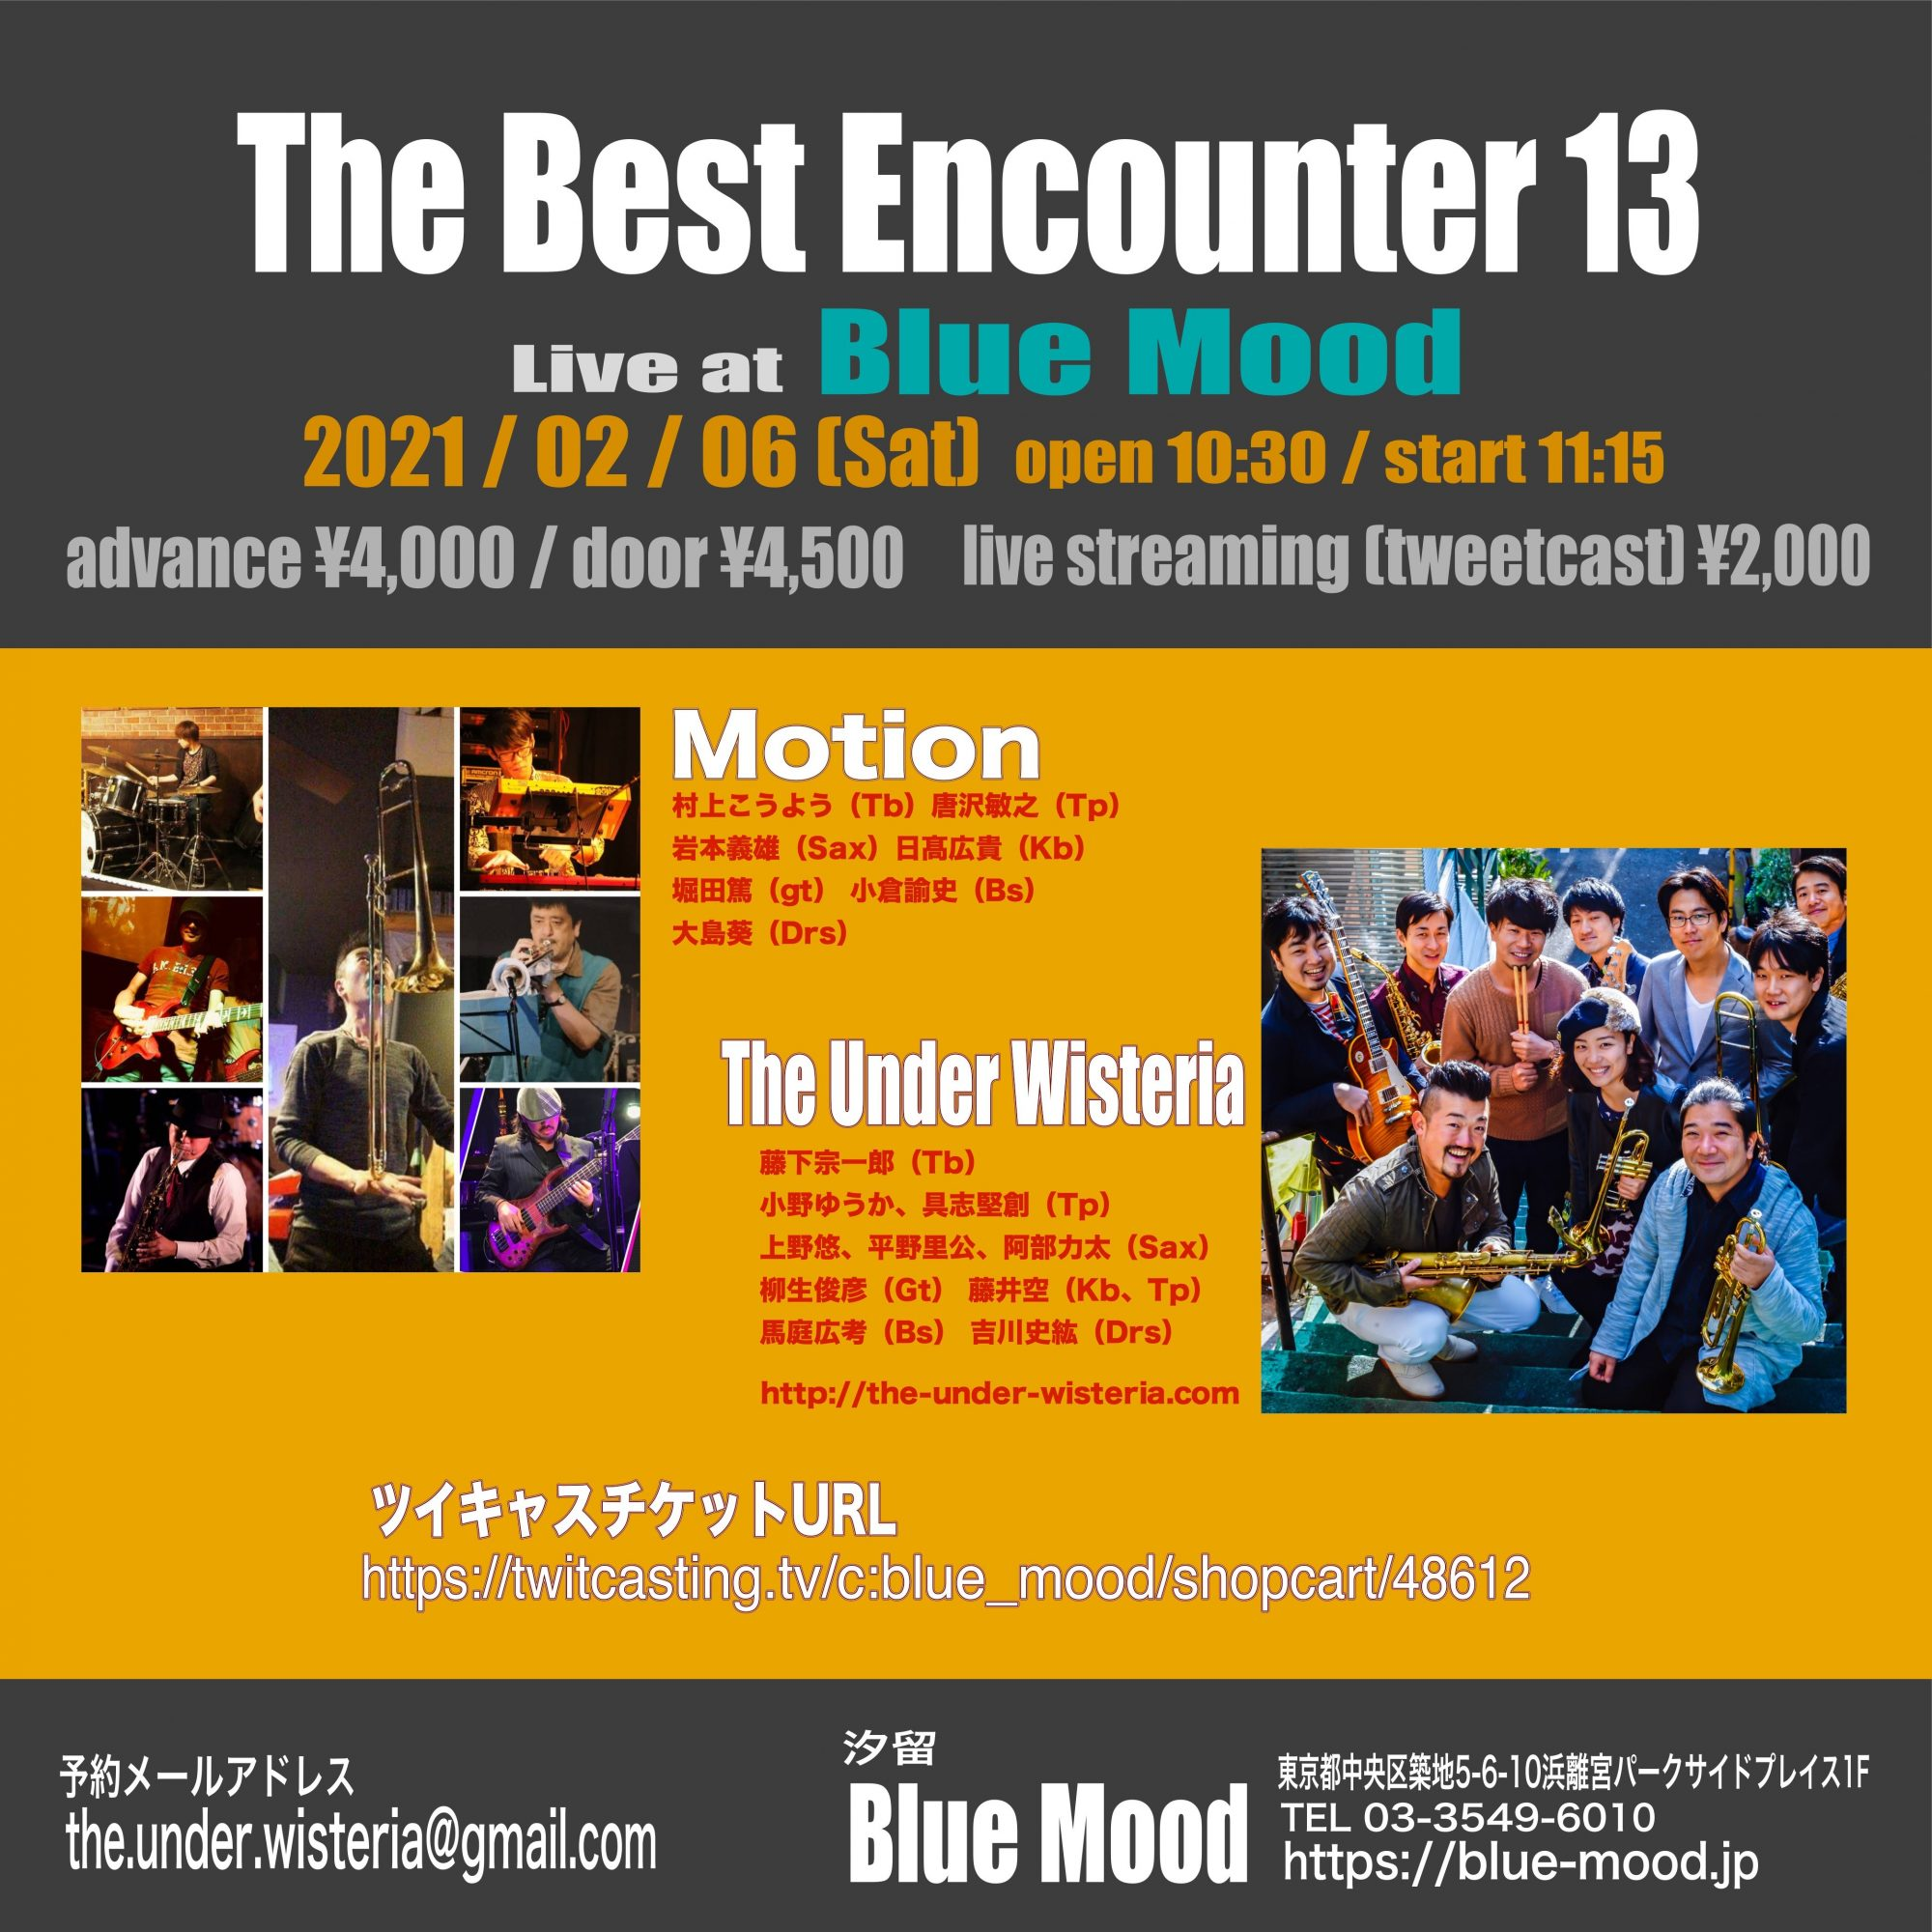 The Best Encounter 13